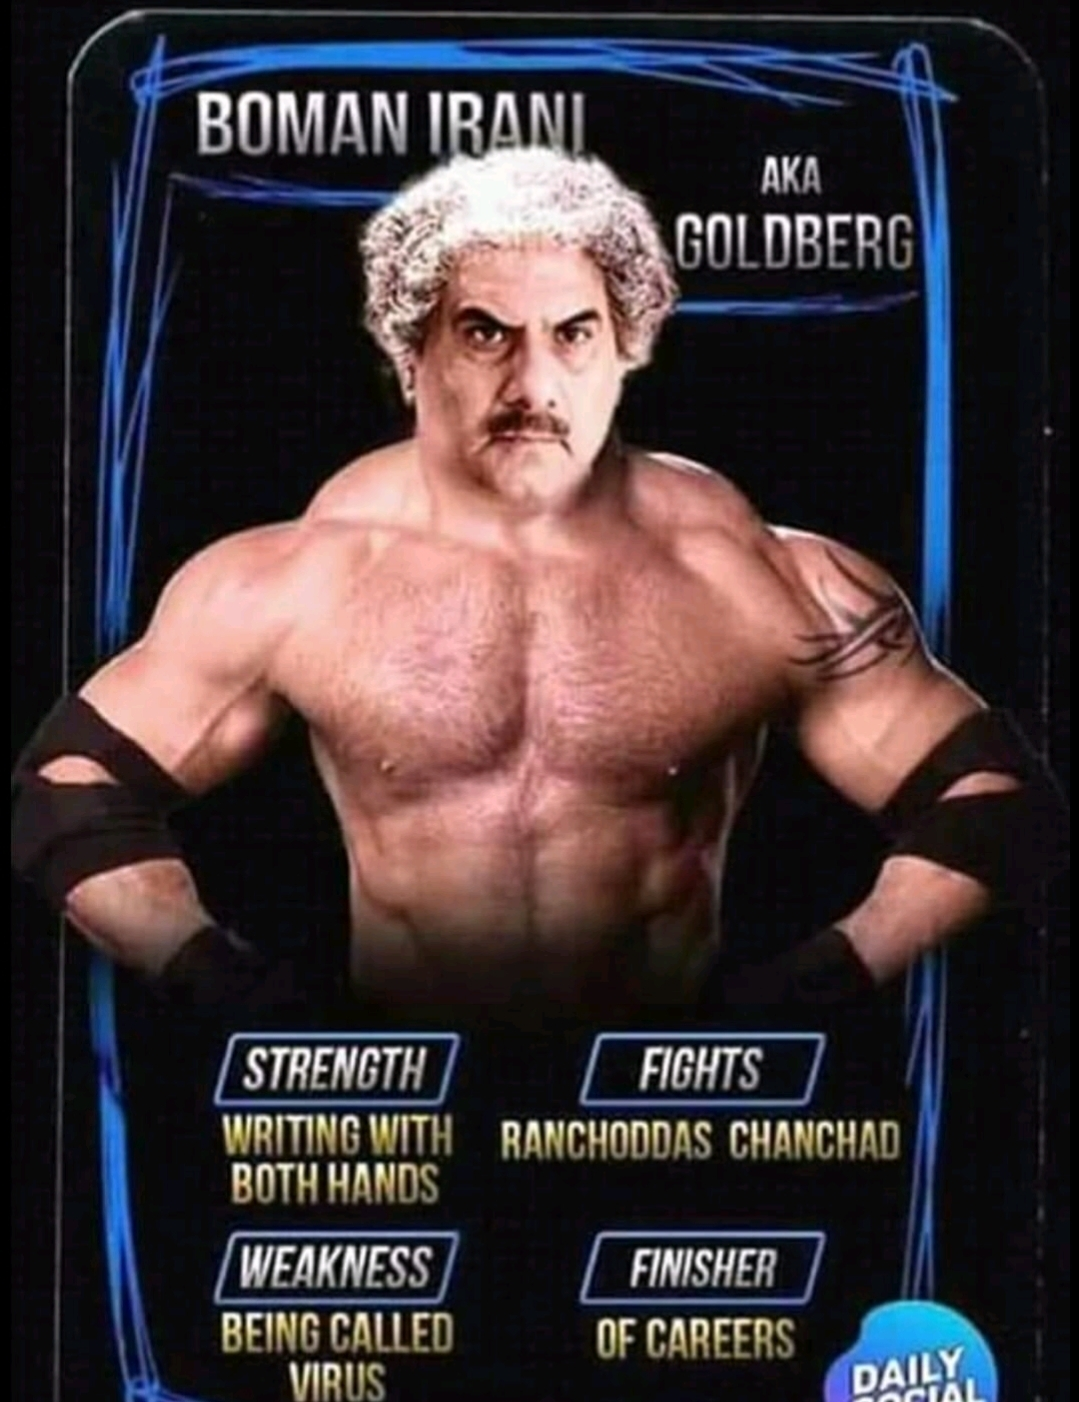 Have You ever imagined, Bollywood Stars in WWE Angle